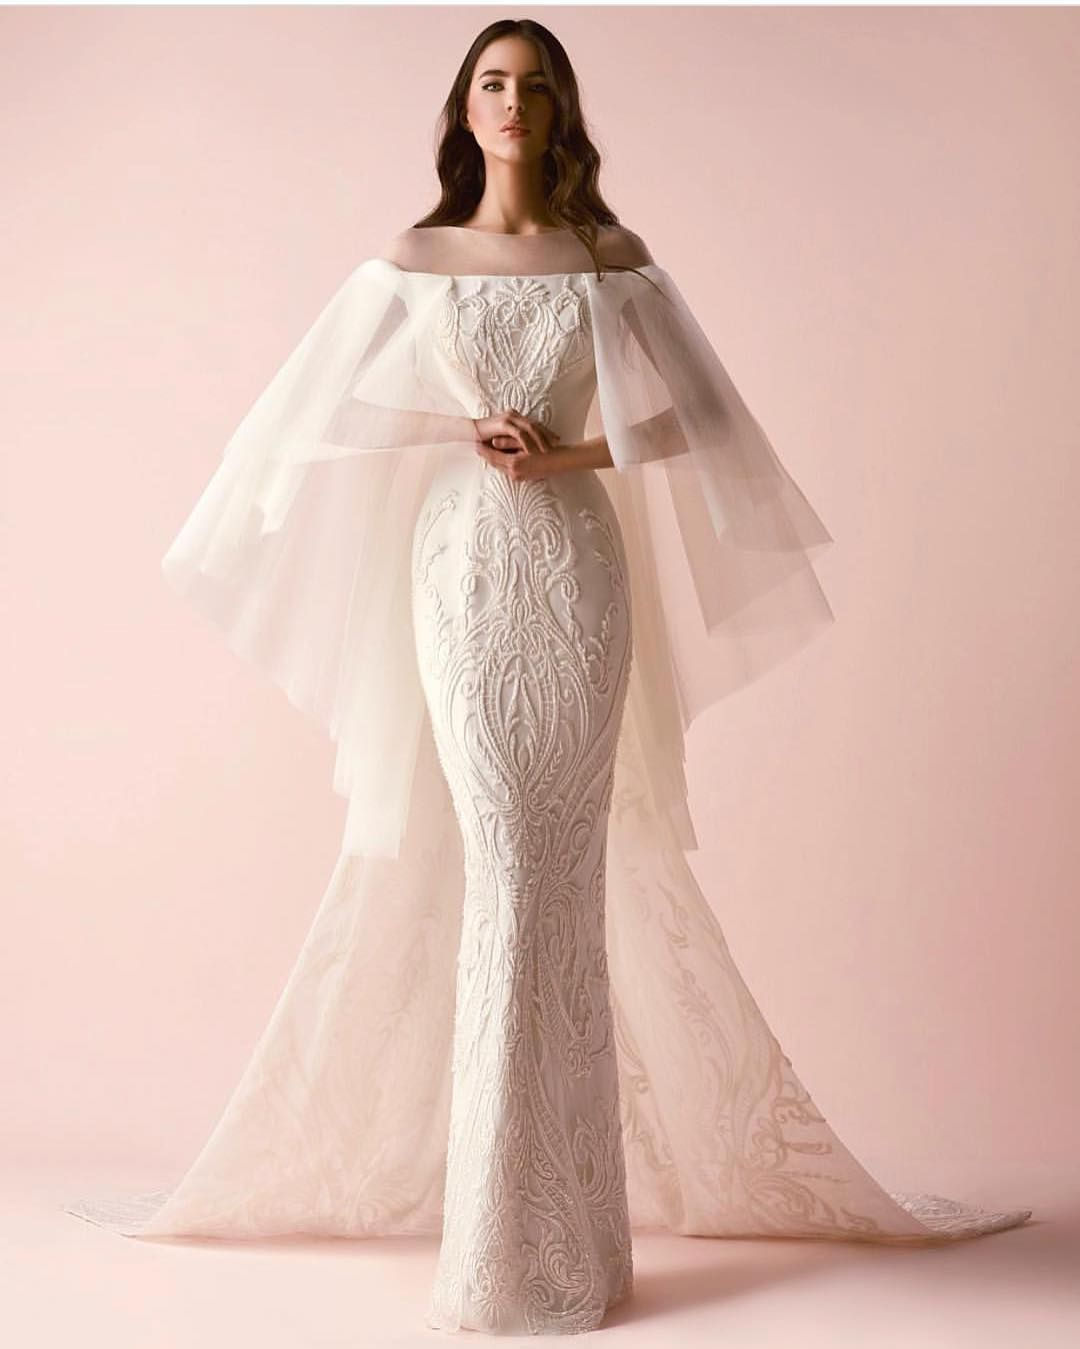 Vintage Wedding Dresses Perth: Pin By Layal Farhat On Weddings And Bridals In 2019